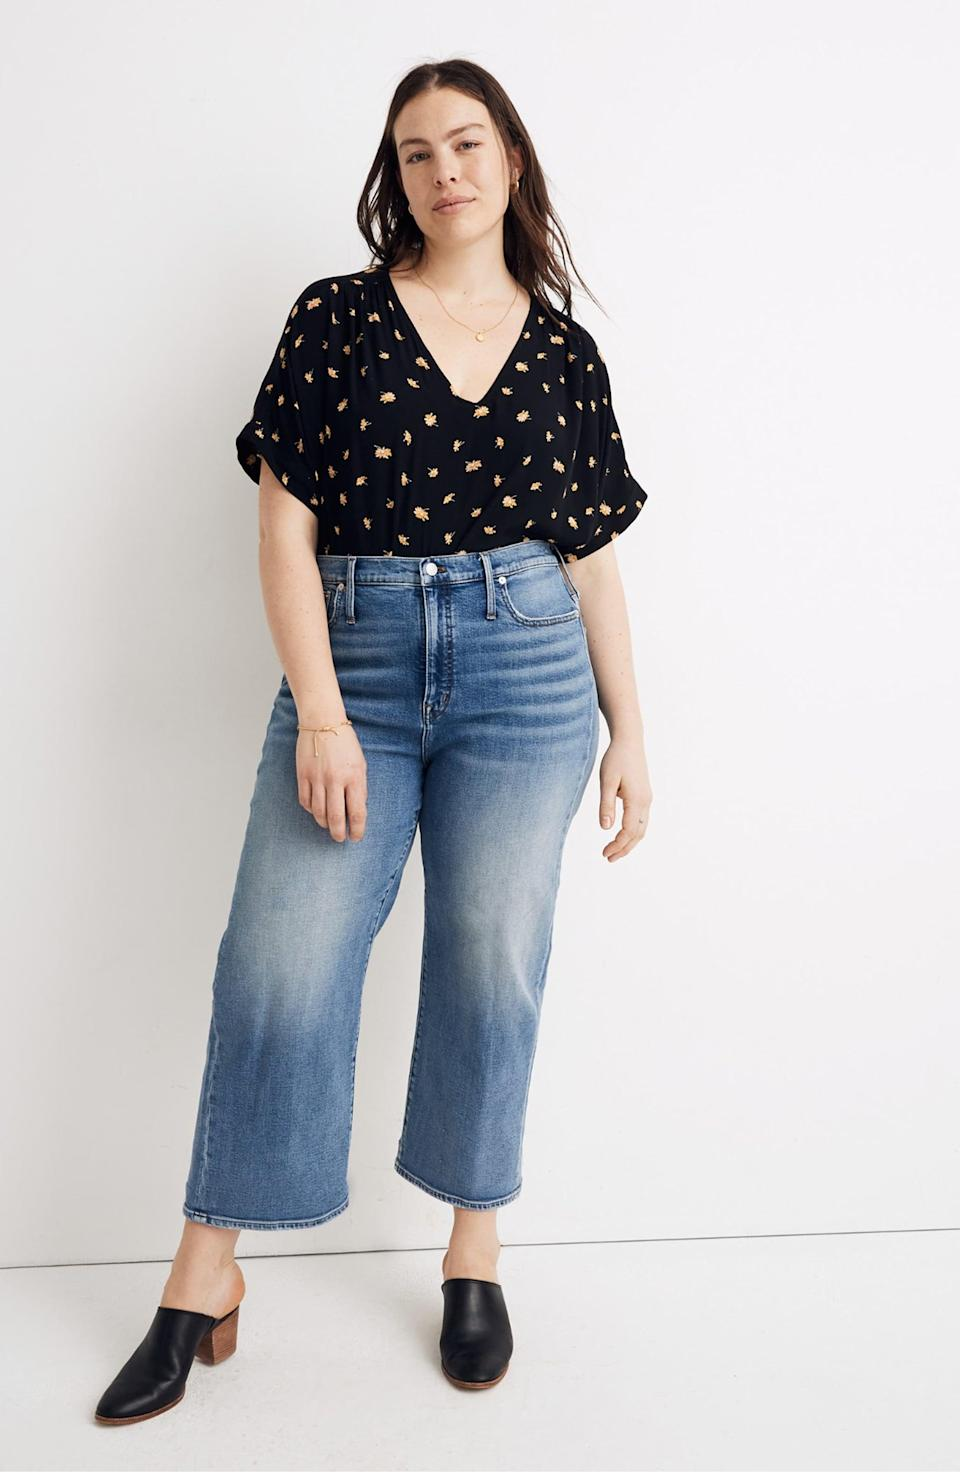 "<p>Wear these <a href=""https://www.popsugar.com/buy/Madewell-Slim-Wide-Leg-Crop-Jeans-585711?p_name=Madewell%20Slim%20Wide%20Leg%20Crop%20Jeans&retailer=shop.nordstrom.com&pid=585711&price=77&evar1=fab%3Aus&evar9=45615413&evar98=https%3A%2F%2Fwww.popsugar.com%2Ffashion%2Fphoto-gallery%2F45615413%2Fimage%2F47583294%2FMadewell-Slim-Wide-Leg-Crop-Jeans&list1=shopping%2Cdenim%2Cwinter%2Cwinter%20fashion&prop13=mobile&pdata=1"" class=""link rapid-noclick-resp"" rel=""nofollow noopener"" target=""_blank"" data-ylk=""slk:Madewell Slim Wide Leg Crop Jeans"">Madewell Slim Wide Leg Crop Jeans</a> ($77, originally $128) with sandals and a floral-print top.</p>"